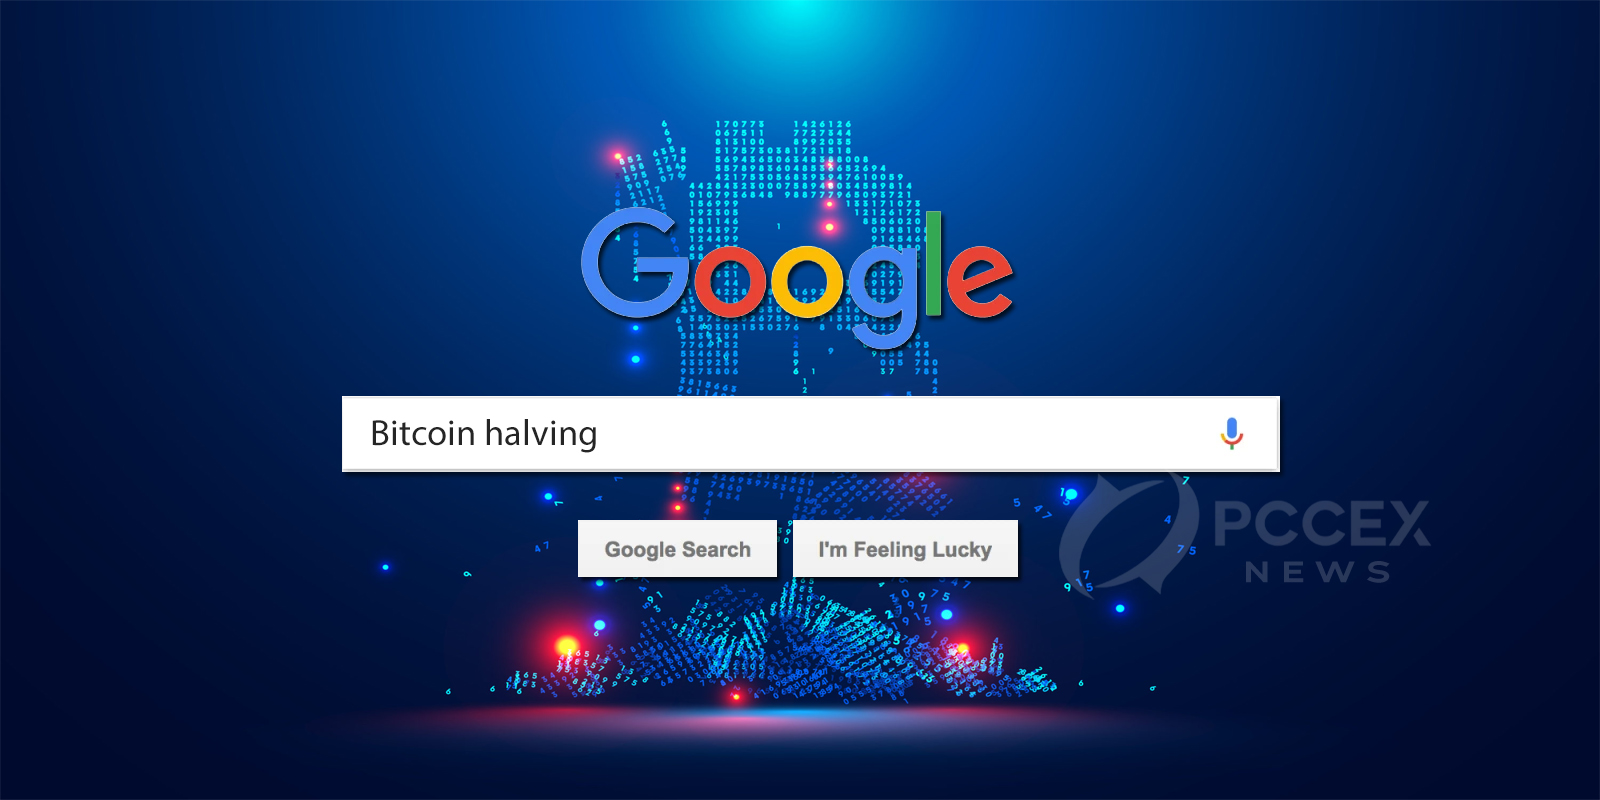 Bitcoin Halving On Google Surpasses Previous Record